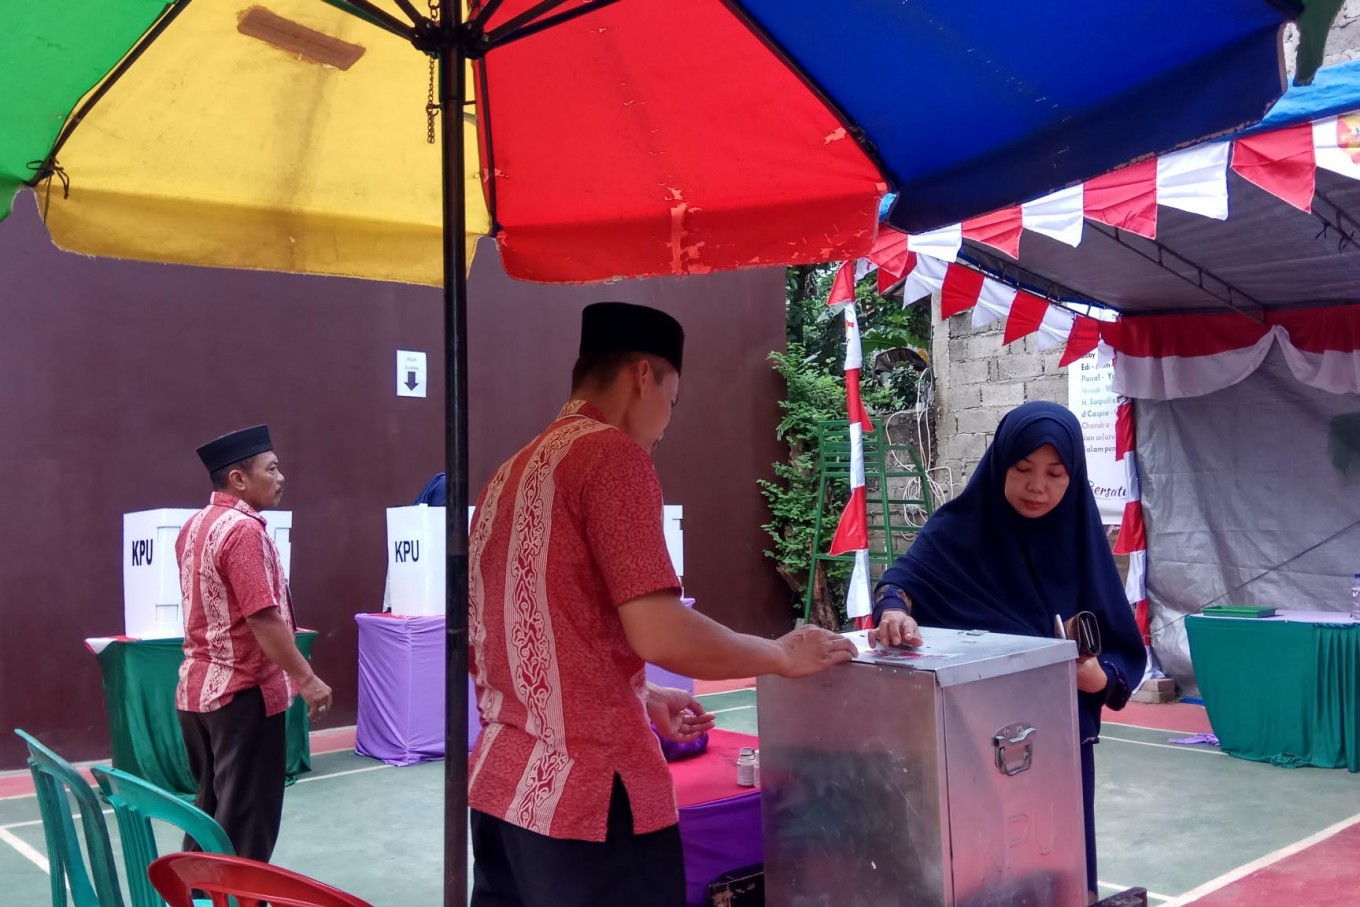 A voter submits her ballot at a polling station in Kalibaru subdistrict, Depok, West Java on Wednesday, June 27, 2018. In the West Java gubernatorial election, Ridwan Kamil and Uu Ruzhanul Ulum won in the quick count result. JP/Ricky Yudhistira